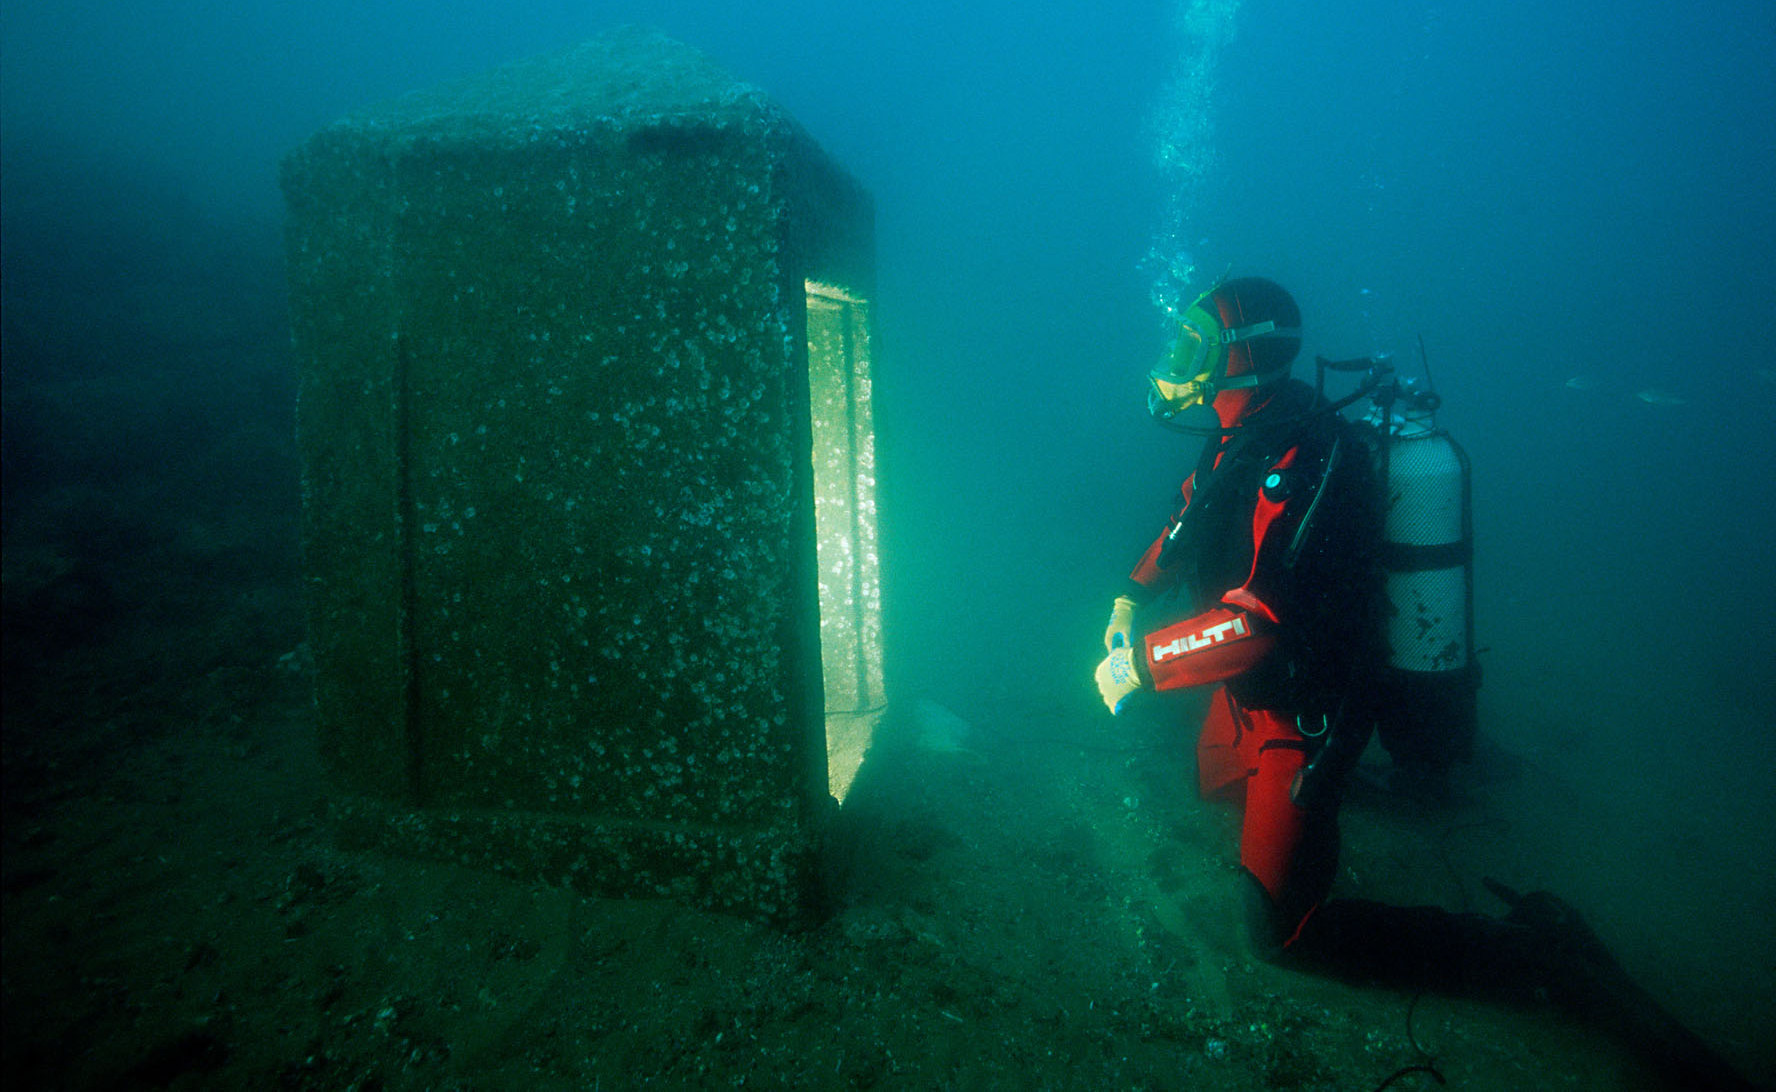 Groundbreaking Discoveries Made In Underwater Ancient